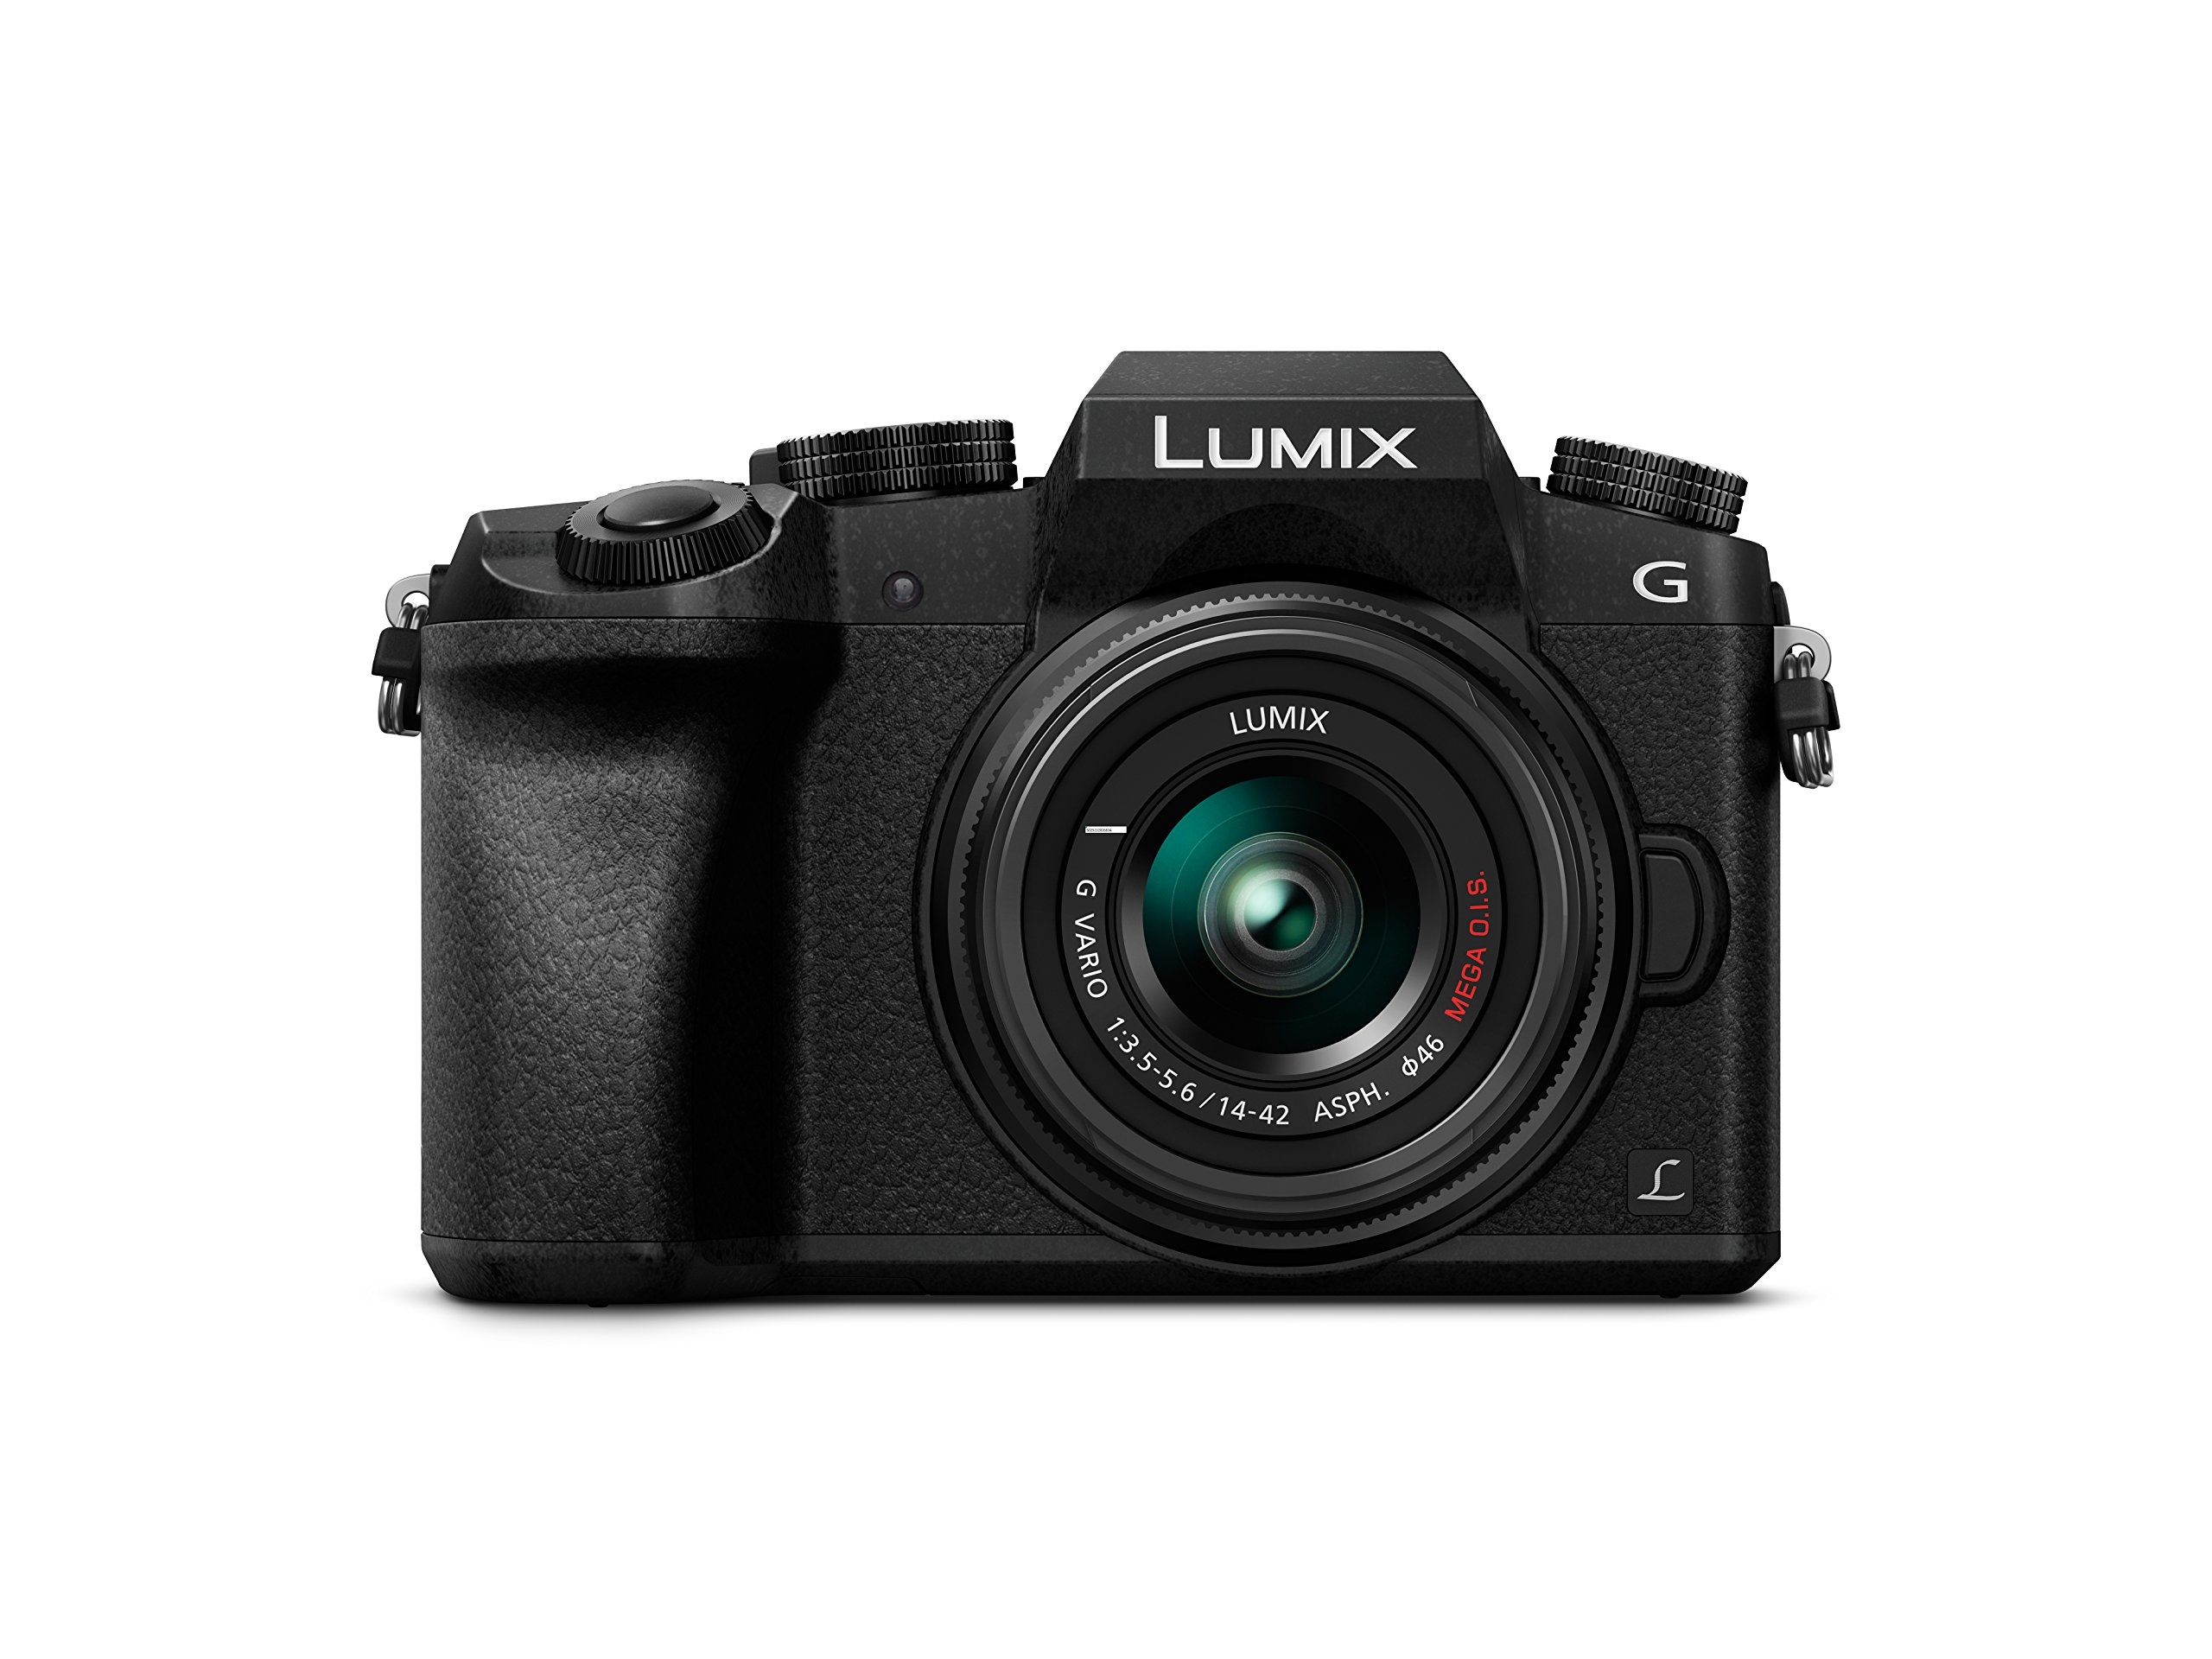 Panasonic Lumix DMC-G7 - Kit Cámara Digital DE 16 MP y Objetivo Standard Zoom